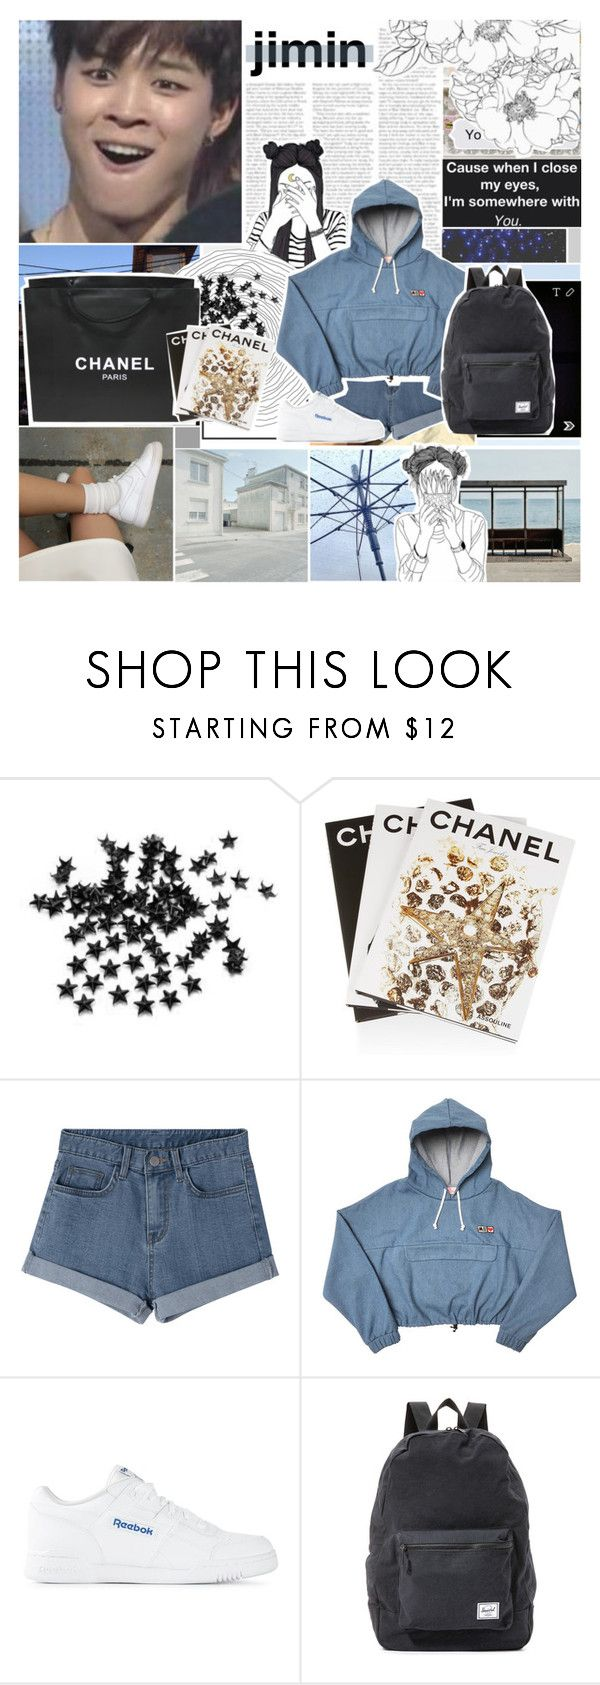 """""""Dance covers w/ Jimin ^^_Crystal"""" by baekyeoltaekook ❤ liked on Polyvore featuring INC International Concepts, Chanel, Assouline Publishing, Reebok and Herschel Supply Co."""